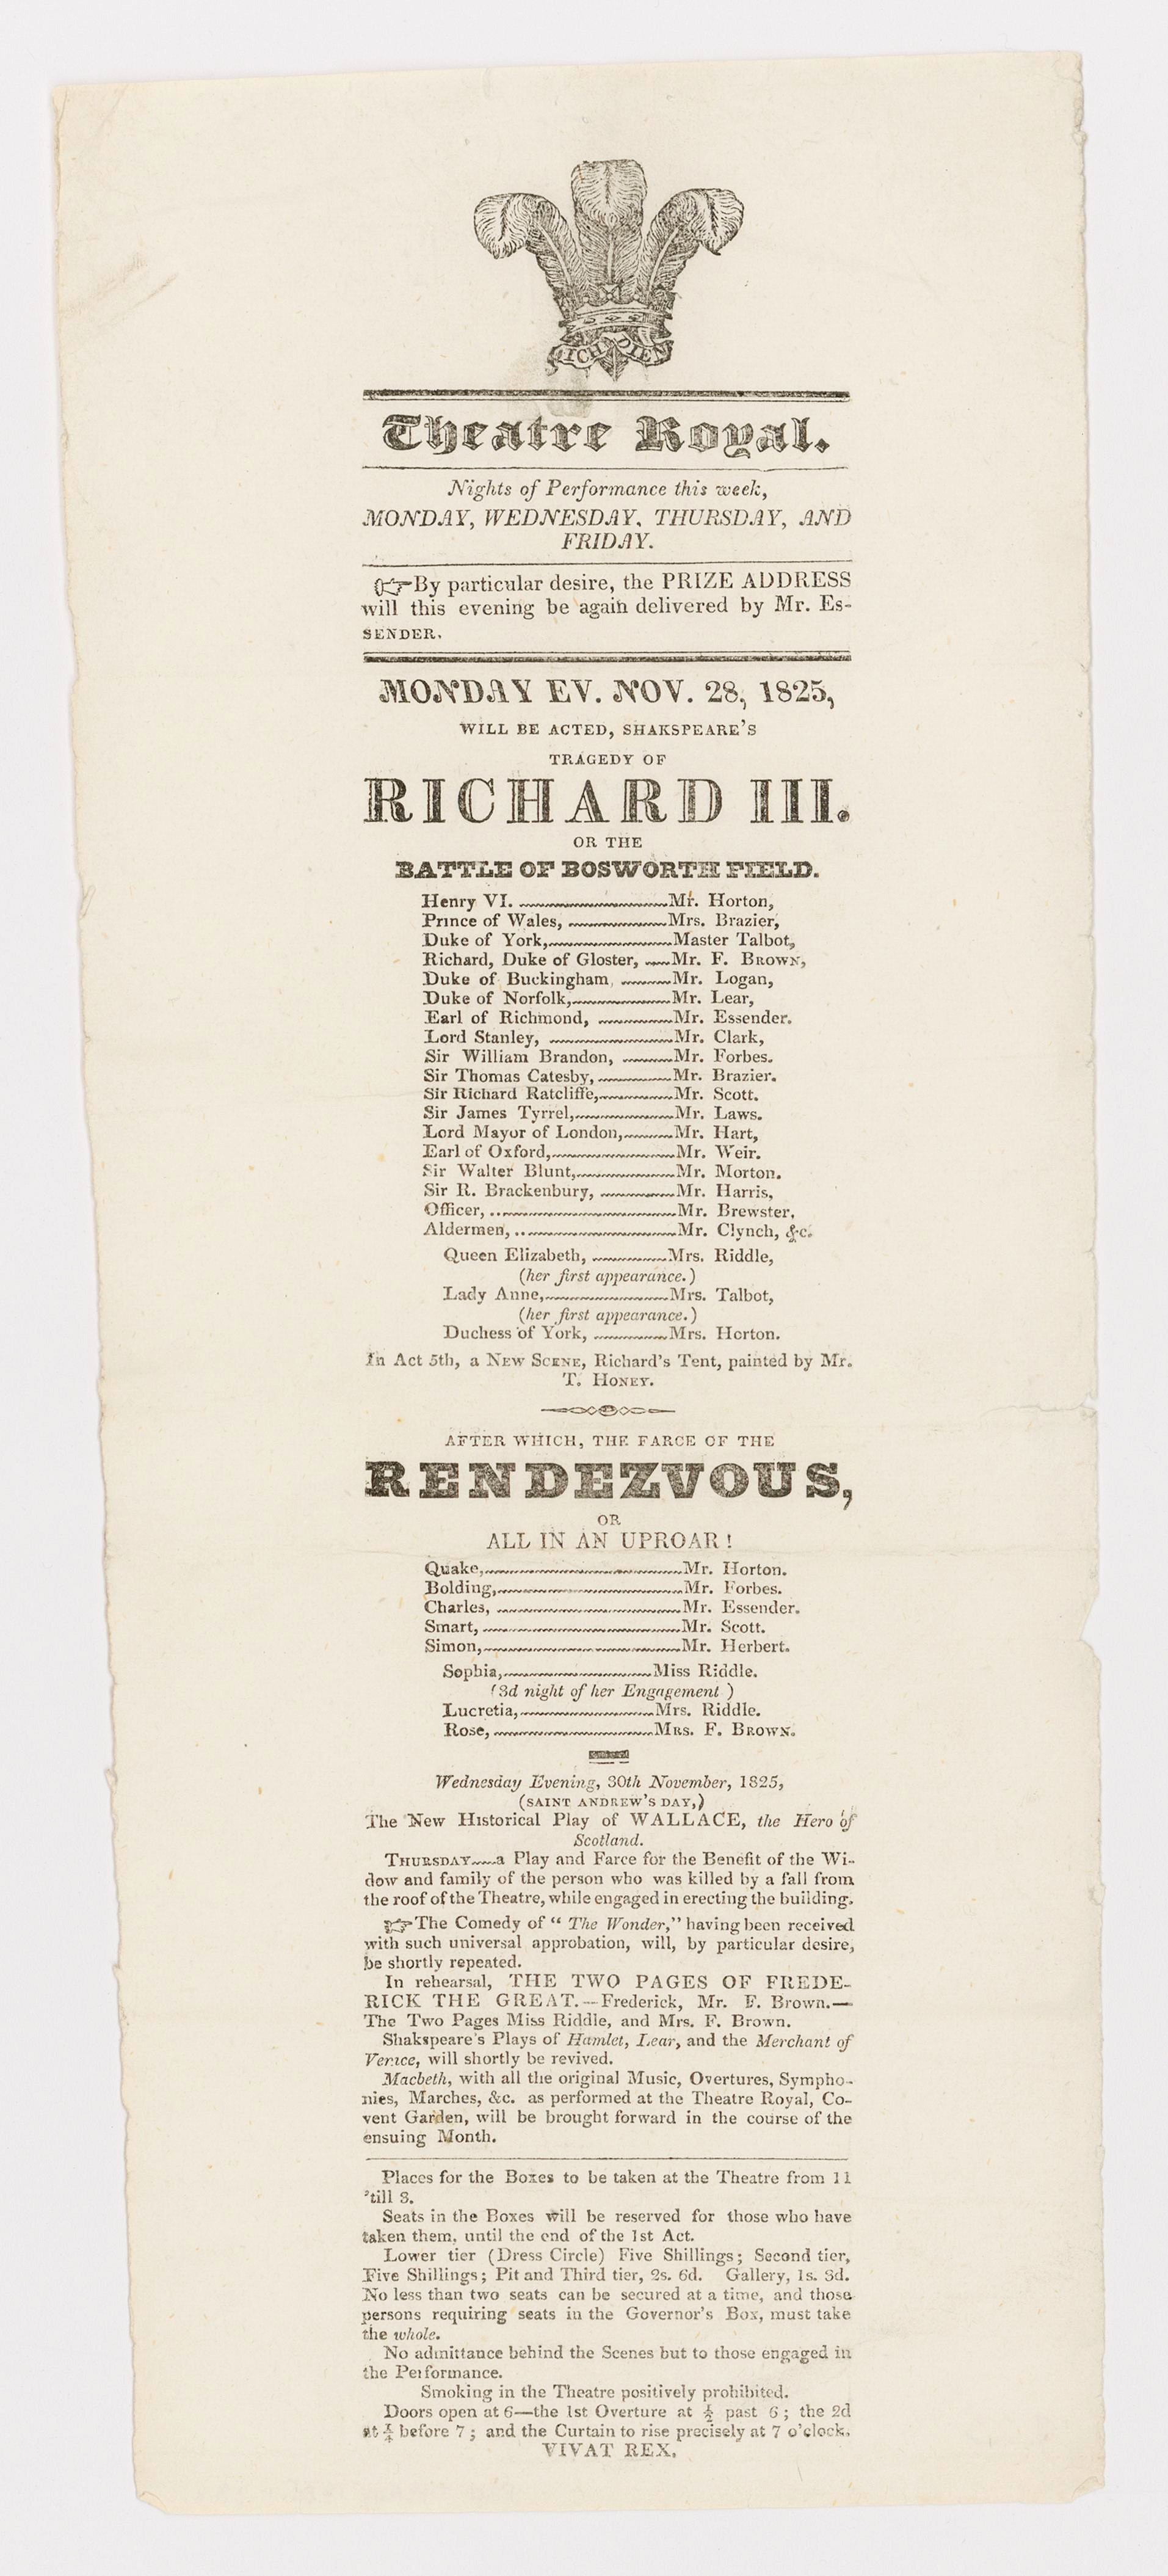 Richard III or the Battle of Bosworth Field [de William Shakespeare], after which, the farce of the Rendez-vous, or all in an uproar!, programme de spectacle, 35 x 14 cm, Montréal, Theatre Royal, 1825.